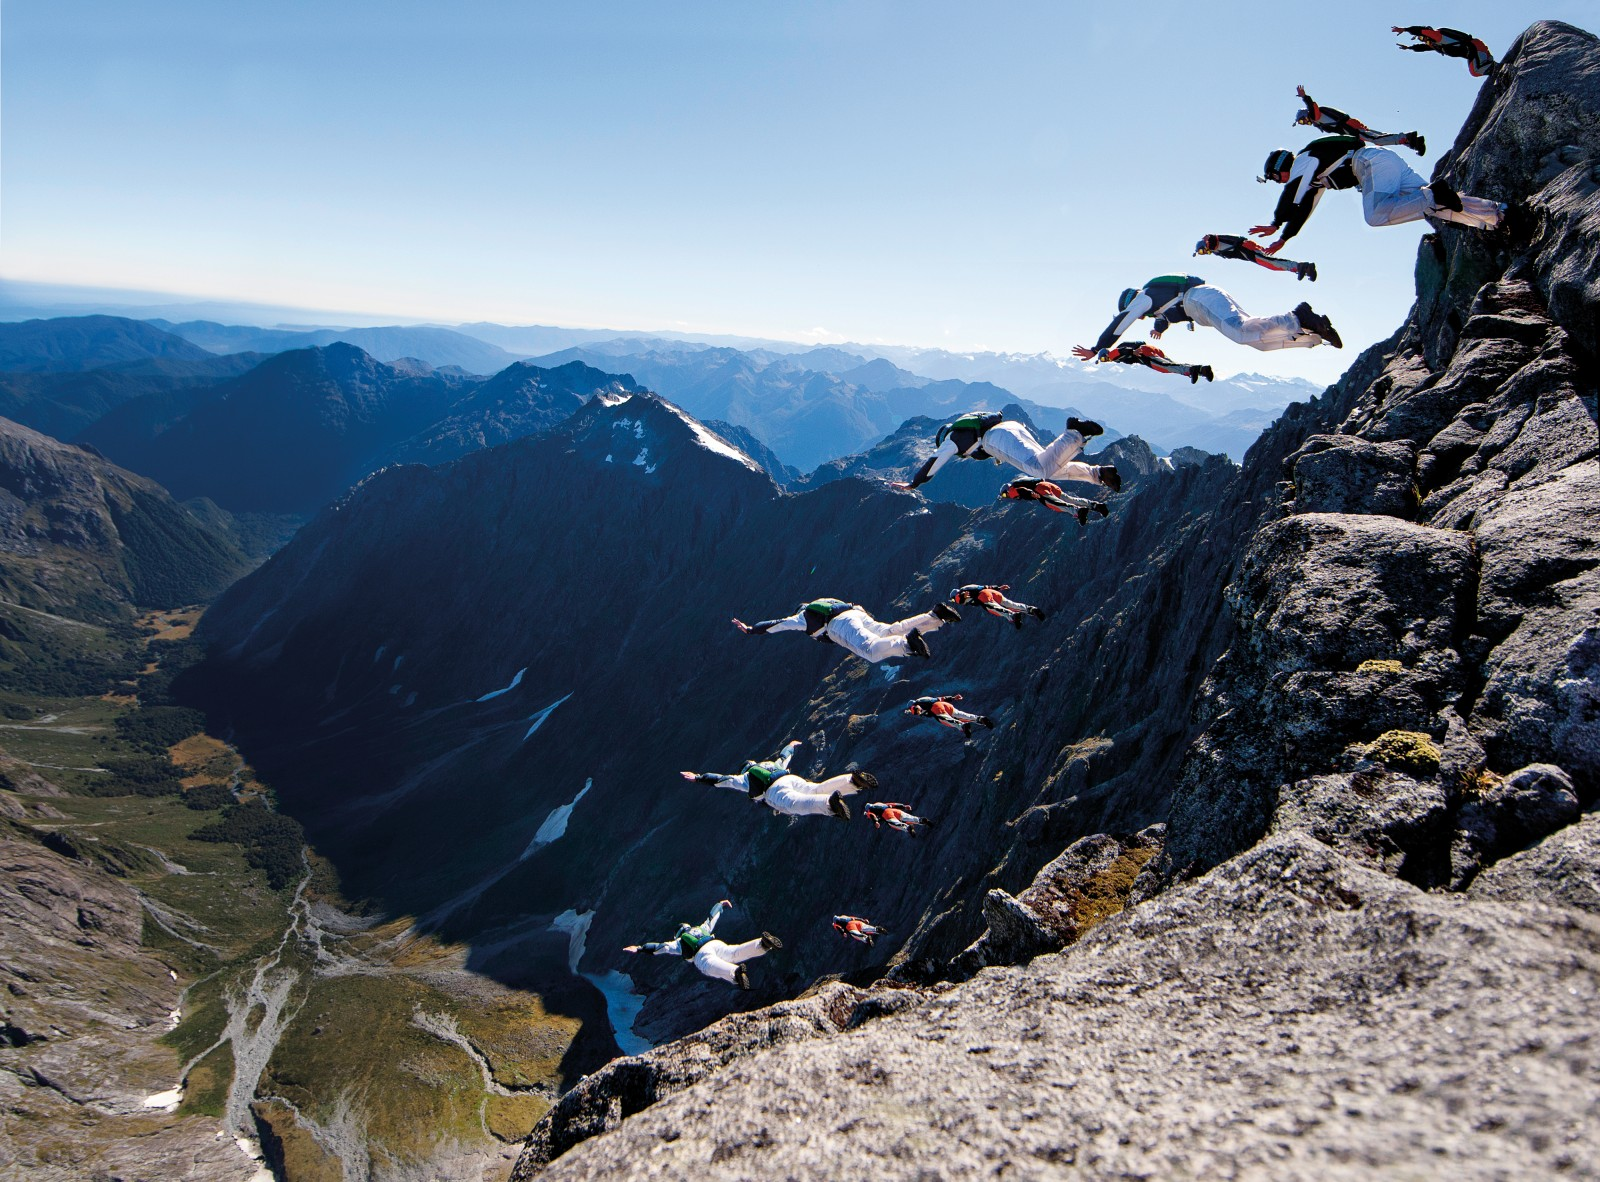 Ted Rudd (foreground) and Alex Polli show their form, leaping in unison from the country's highest wall. The correct body position—plus or minus just three degrees—allows them to 'track' away from the wall into clear air, then glide at close to 200 km/h around escarpments and through ravines, deploying their canopies kilometres farther down Sinbad Gully.